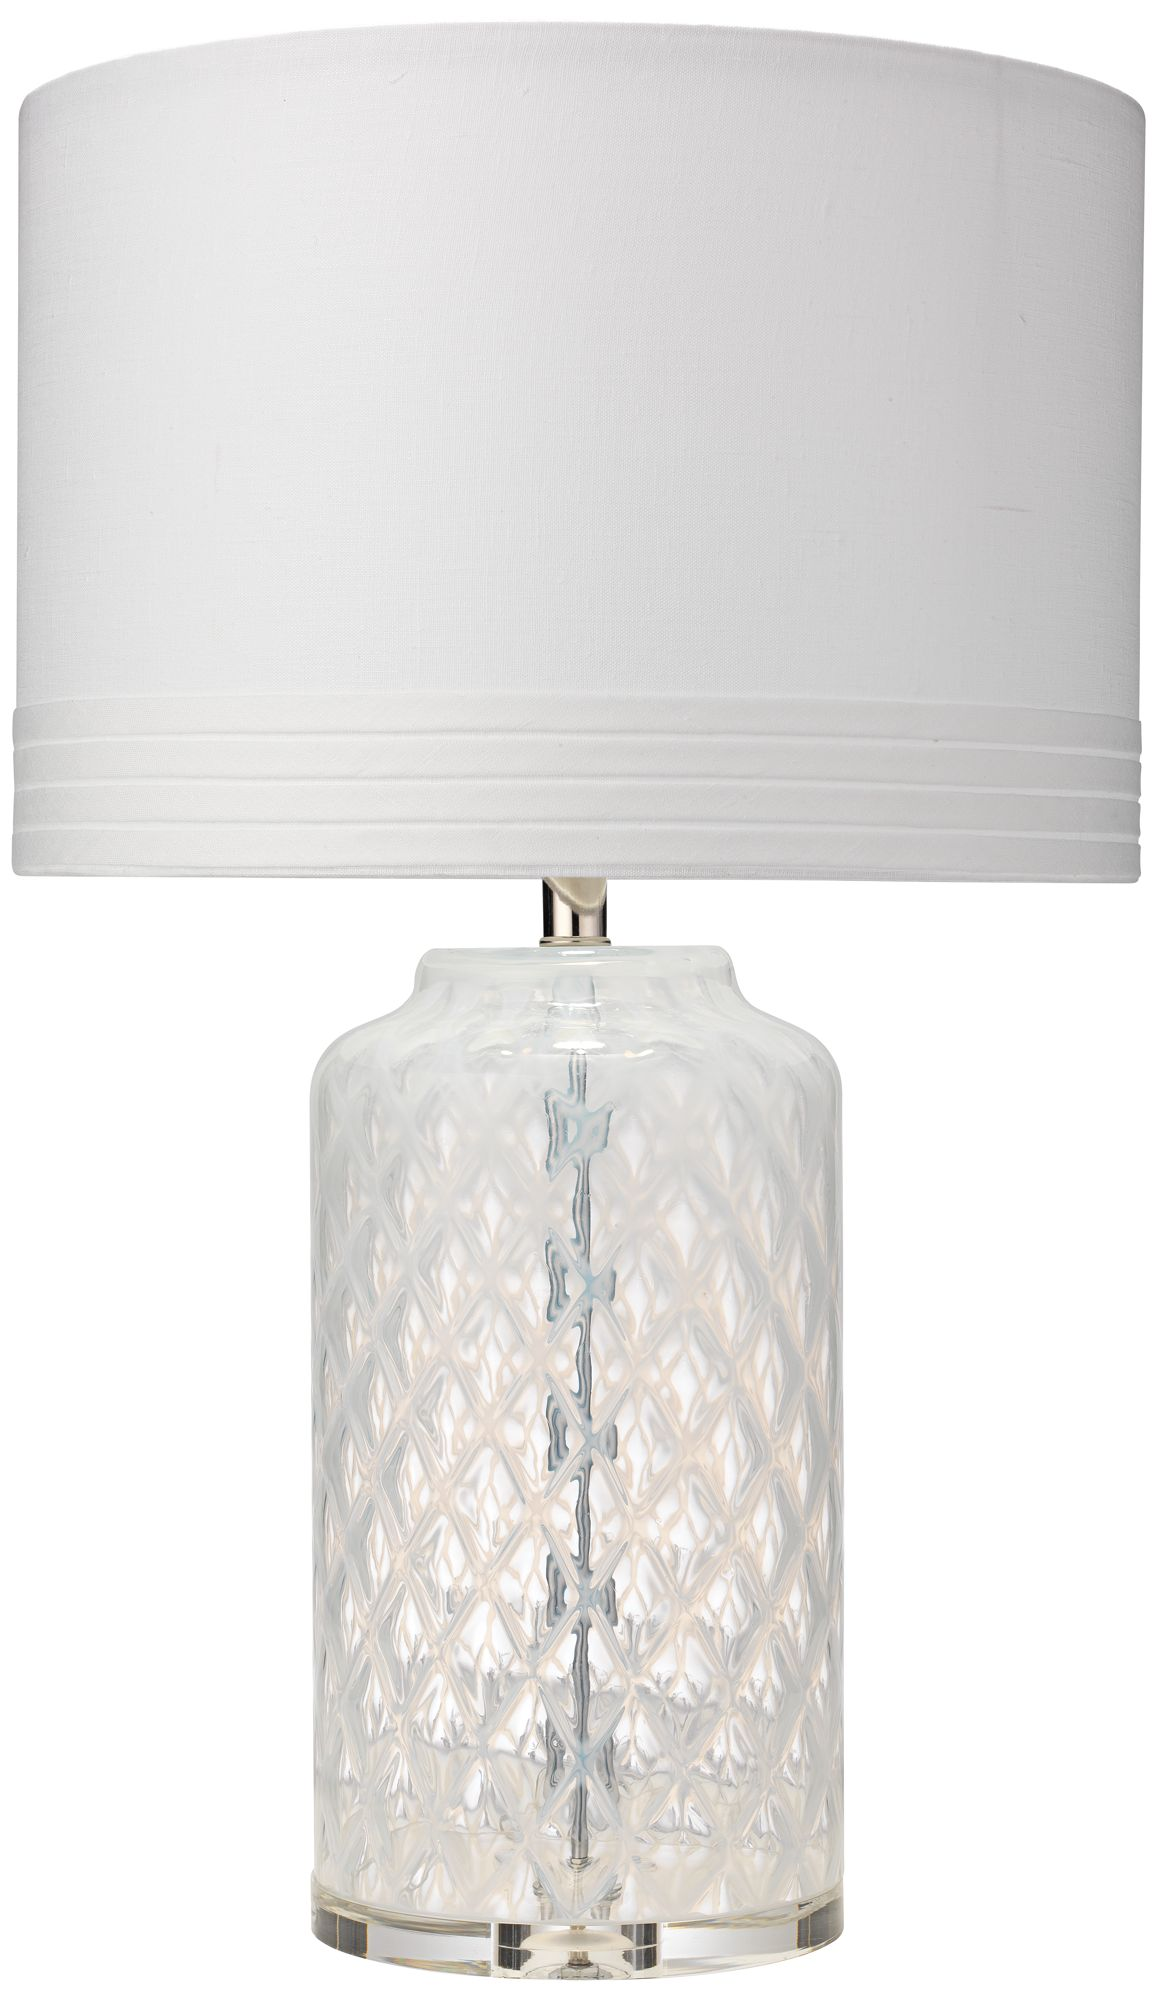 Ordinaire Lamps Plus